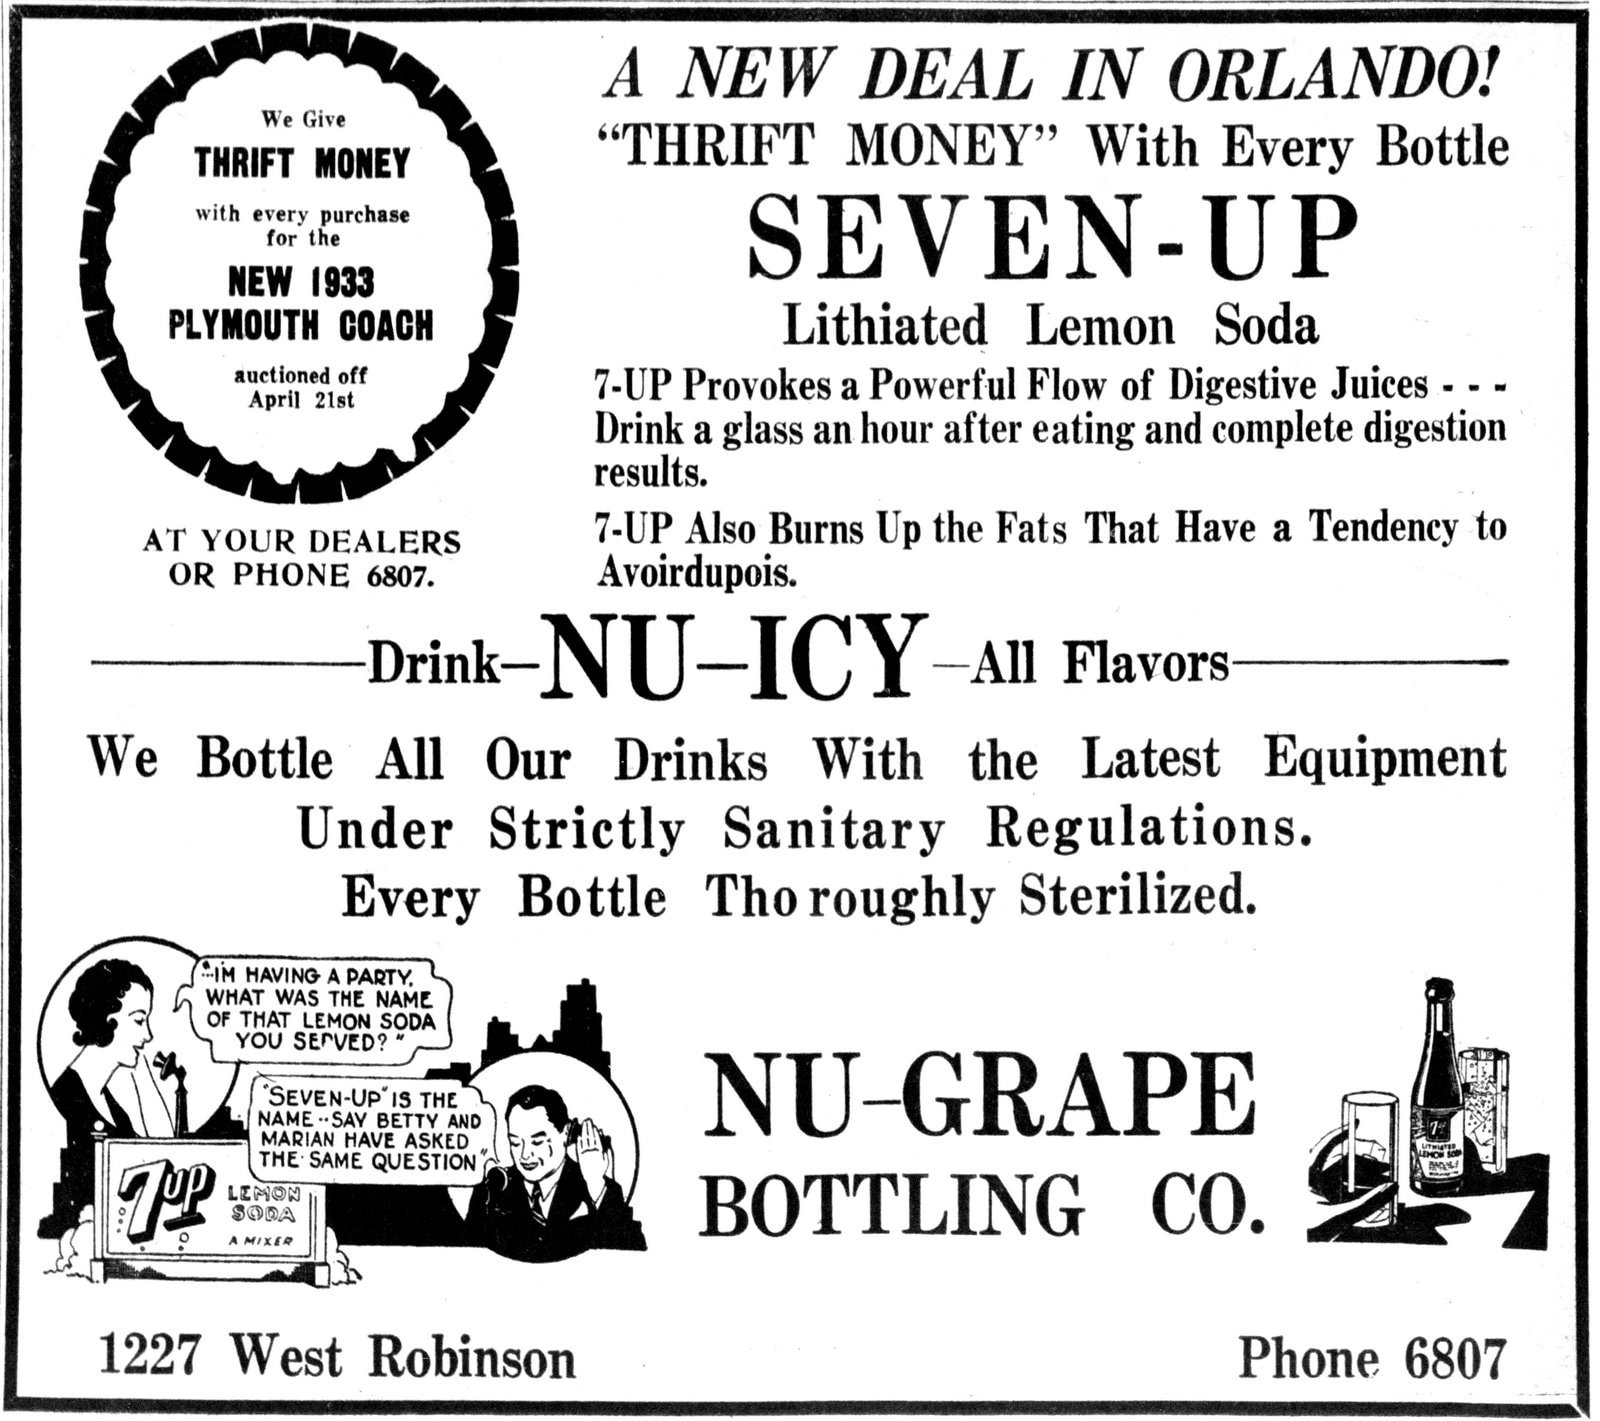 Old 7UP ad in The Orlando Sentinel (Orlando, Florida) March 26, 1933